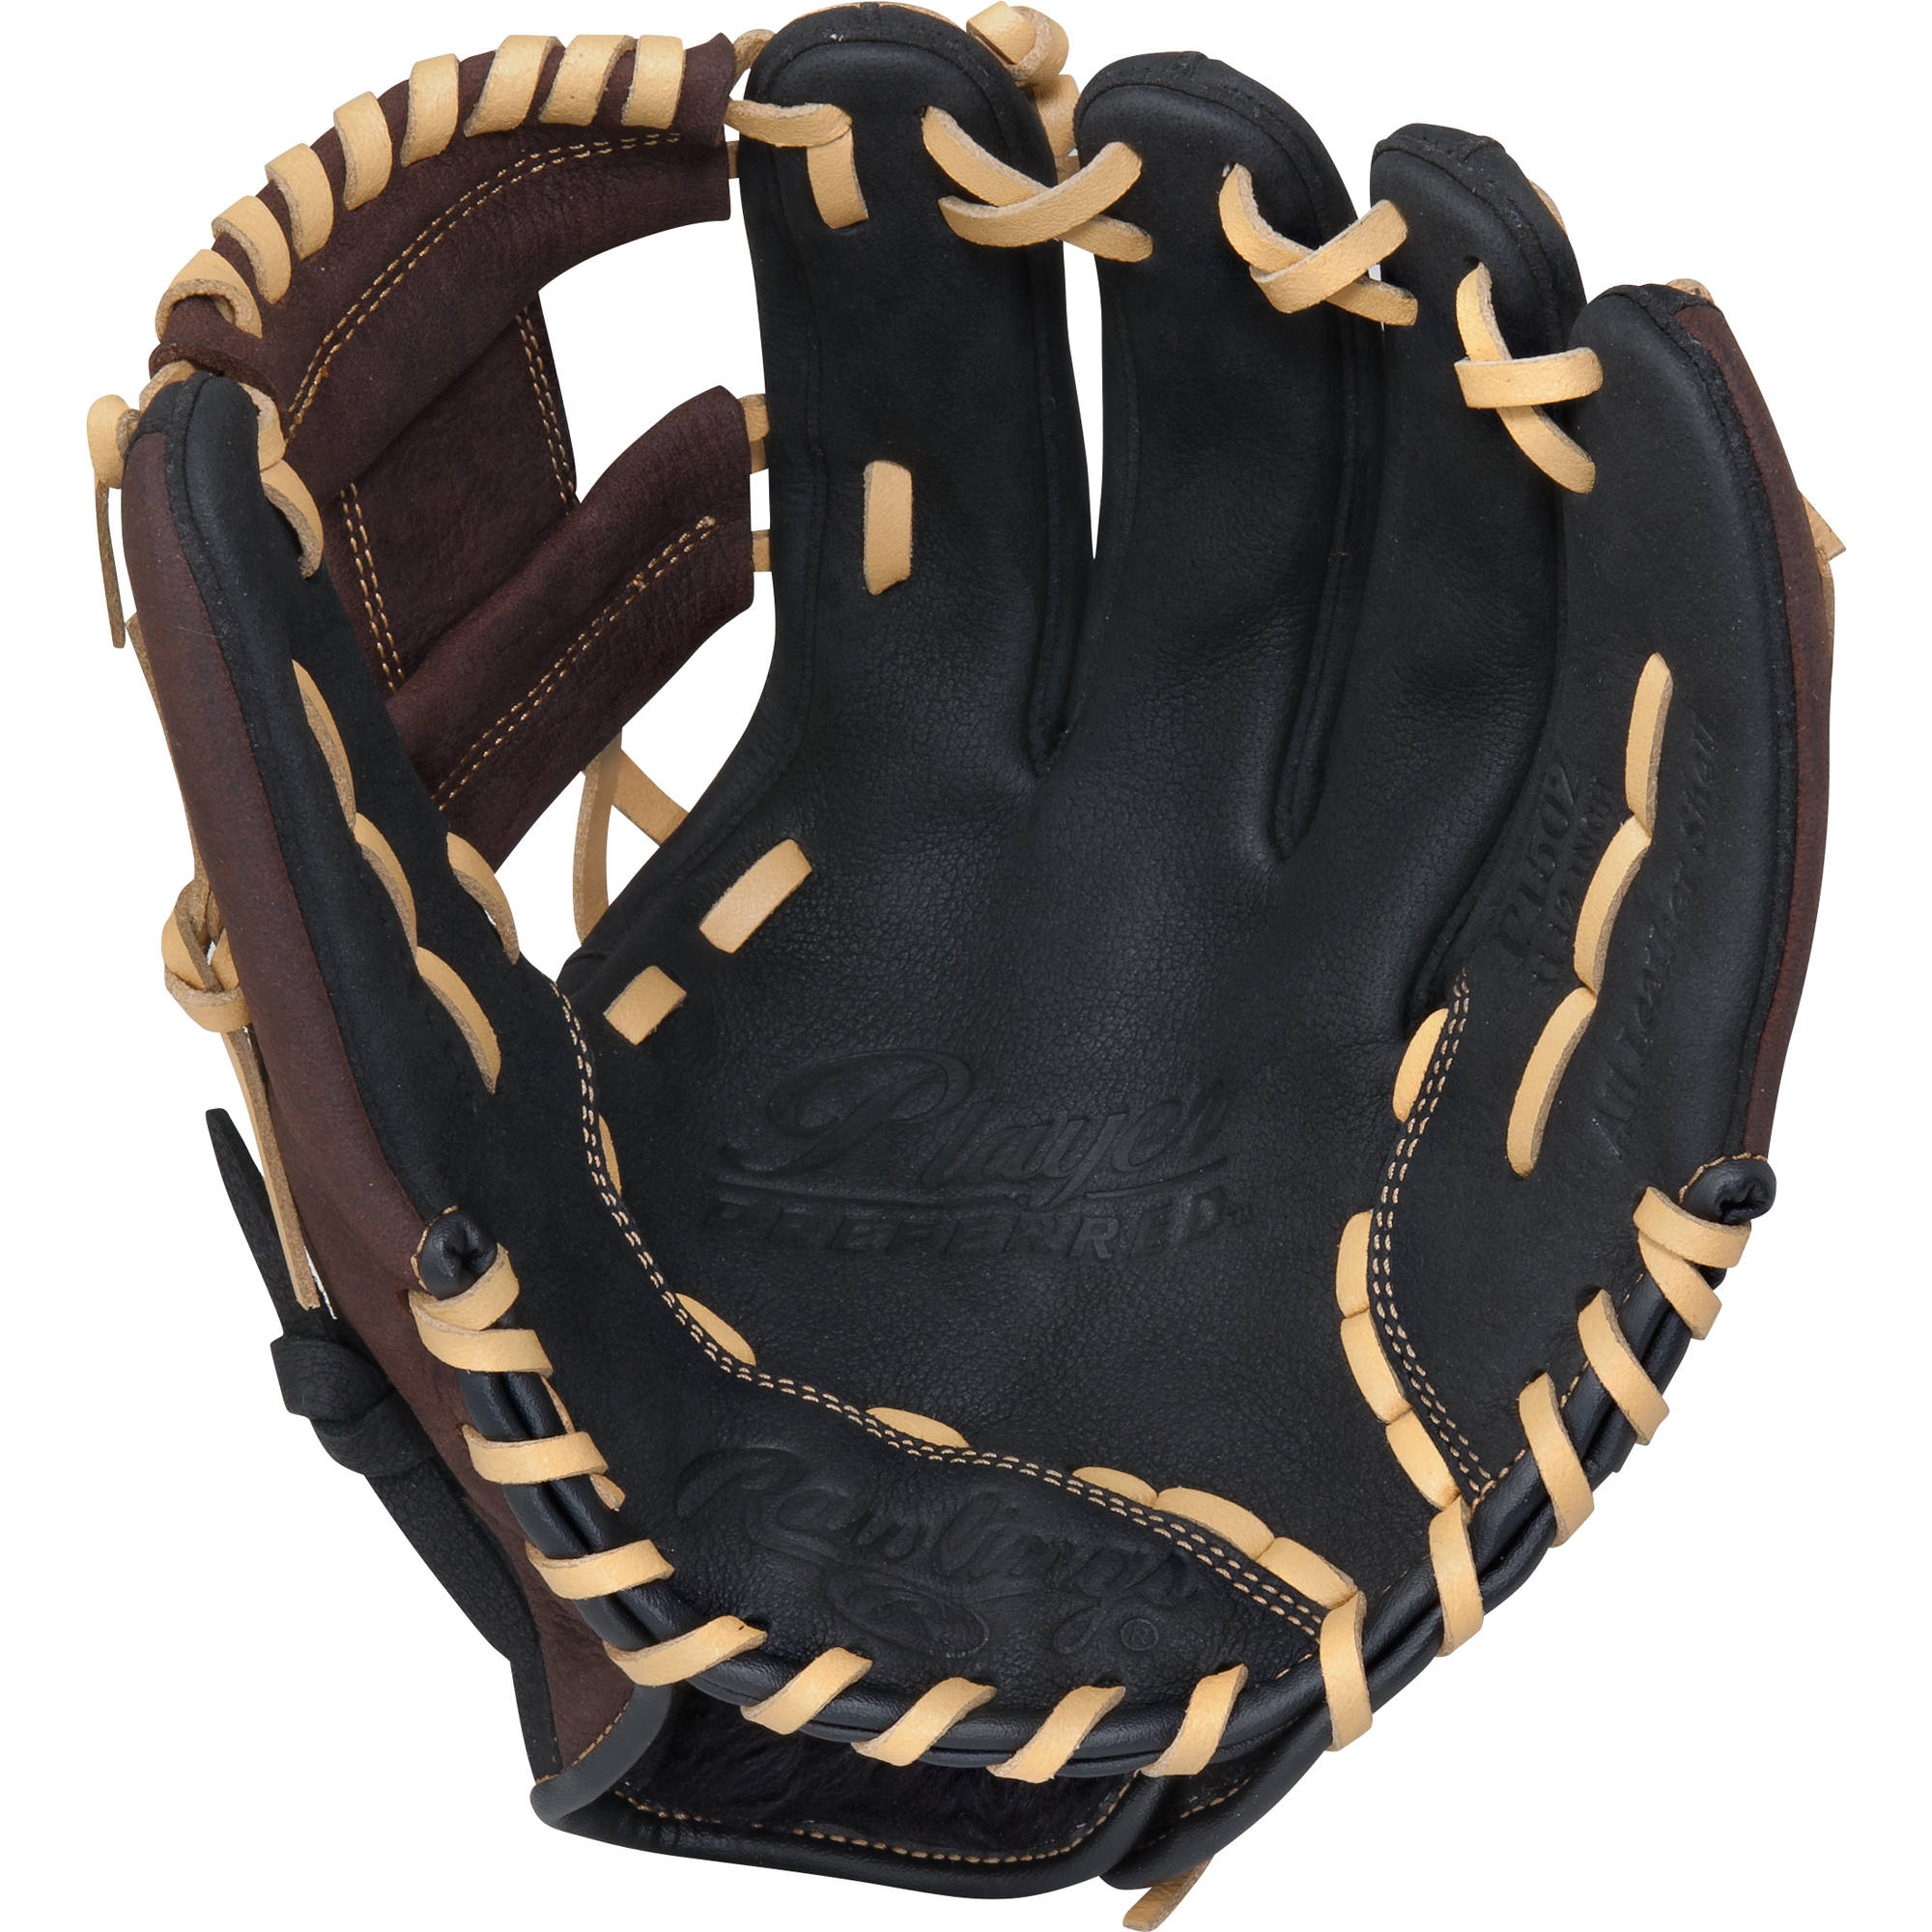 "Rawlings 11.5"" Player Preferred Glove"